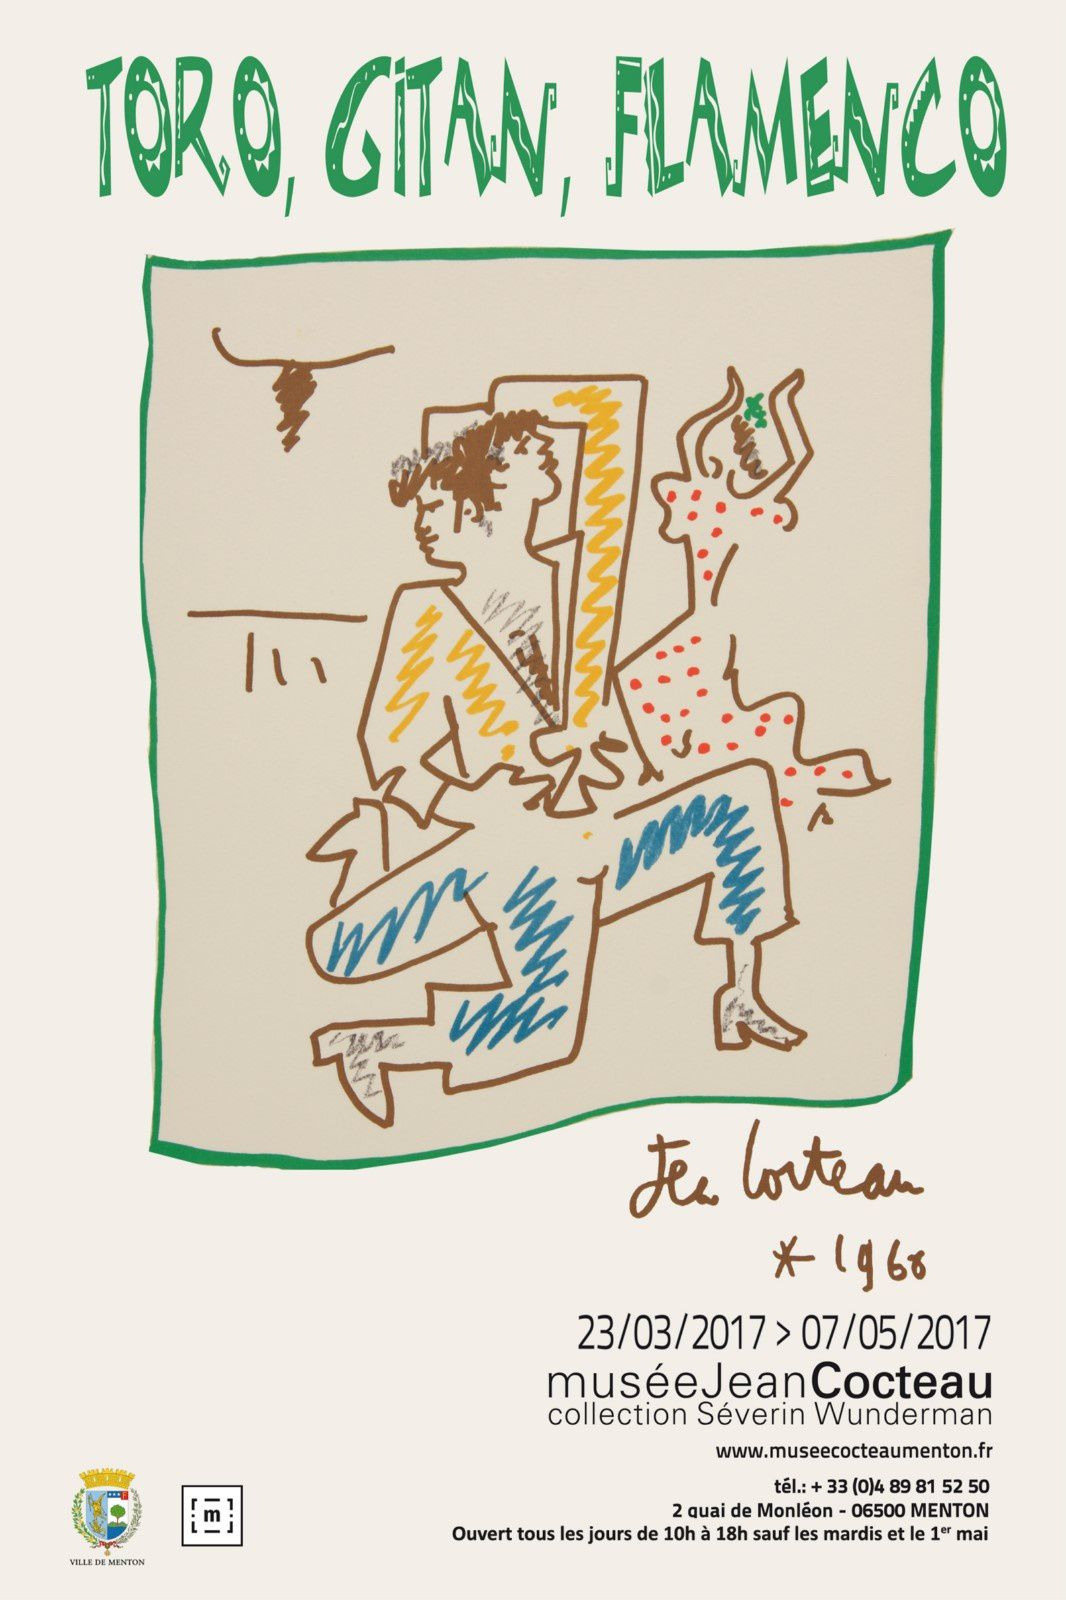 MENTON: MUSEE JEAN COCTEAU COLLECTION SEVERIN WUNDERMAN EXPOSITION « TORO, GITAN, FLAMENCO »